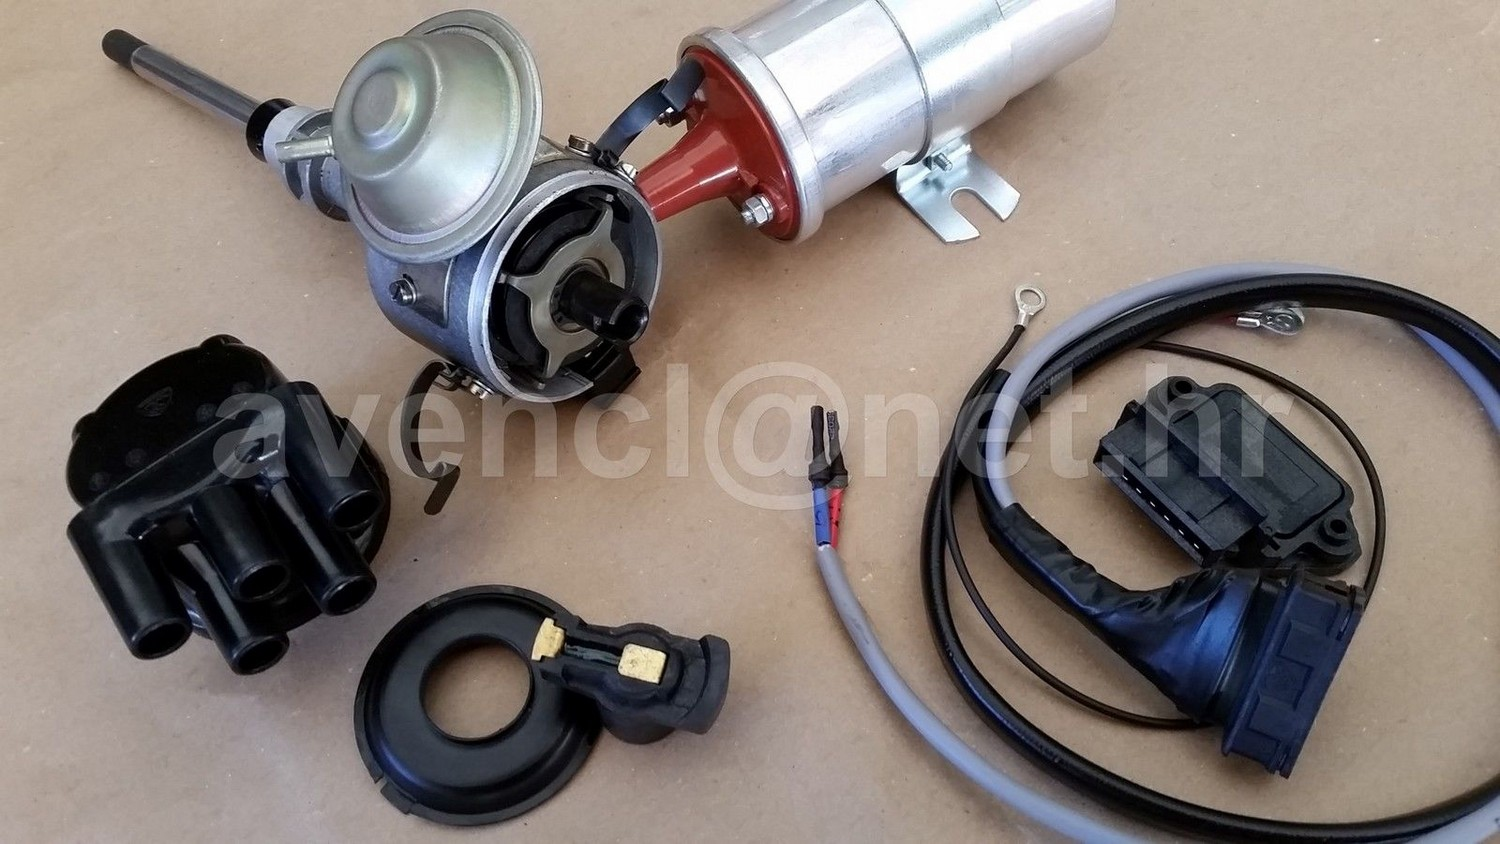 Fiat Uno Ignition System Circuit And Schematic